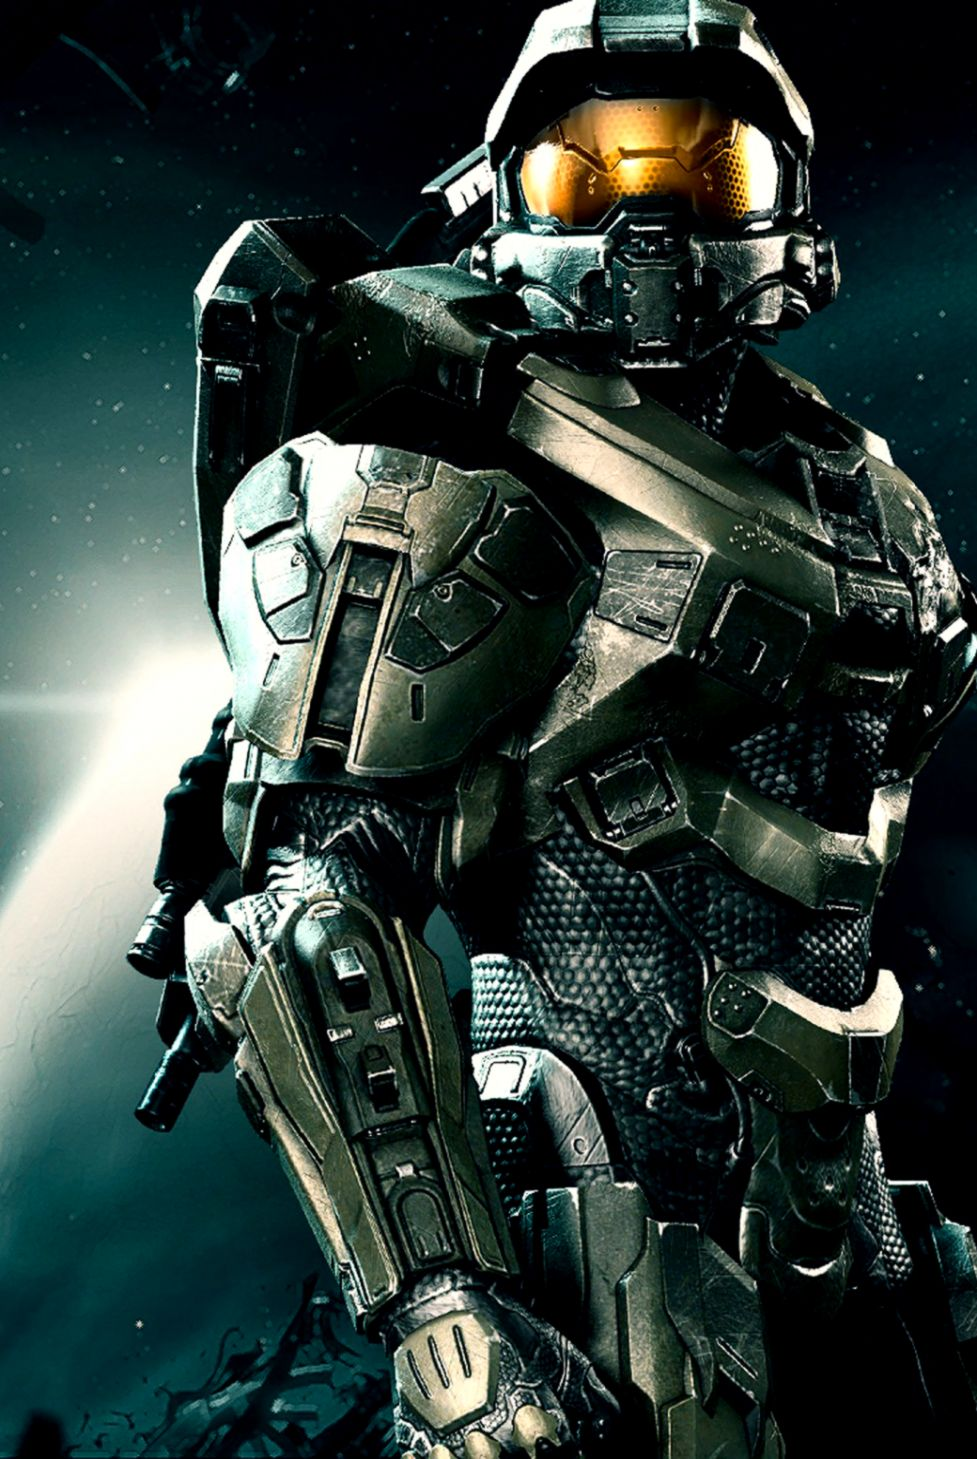 halo iphone wallpaper | all hd wallpapers gallerry